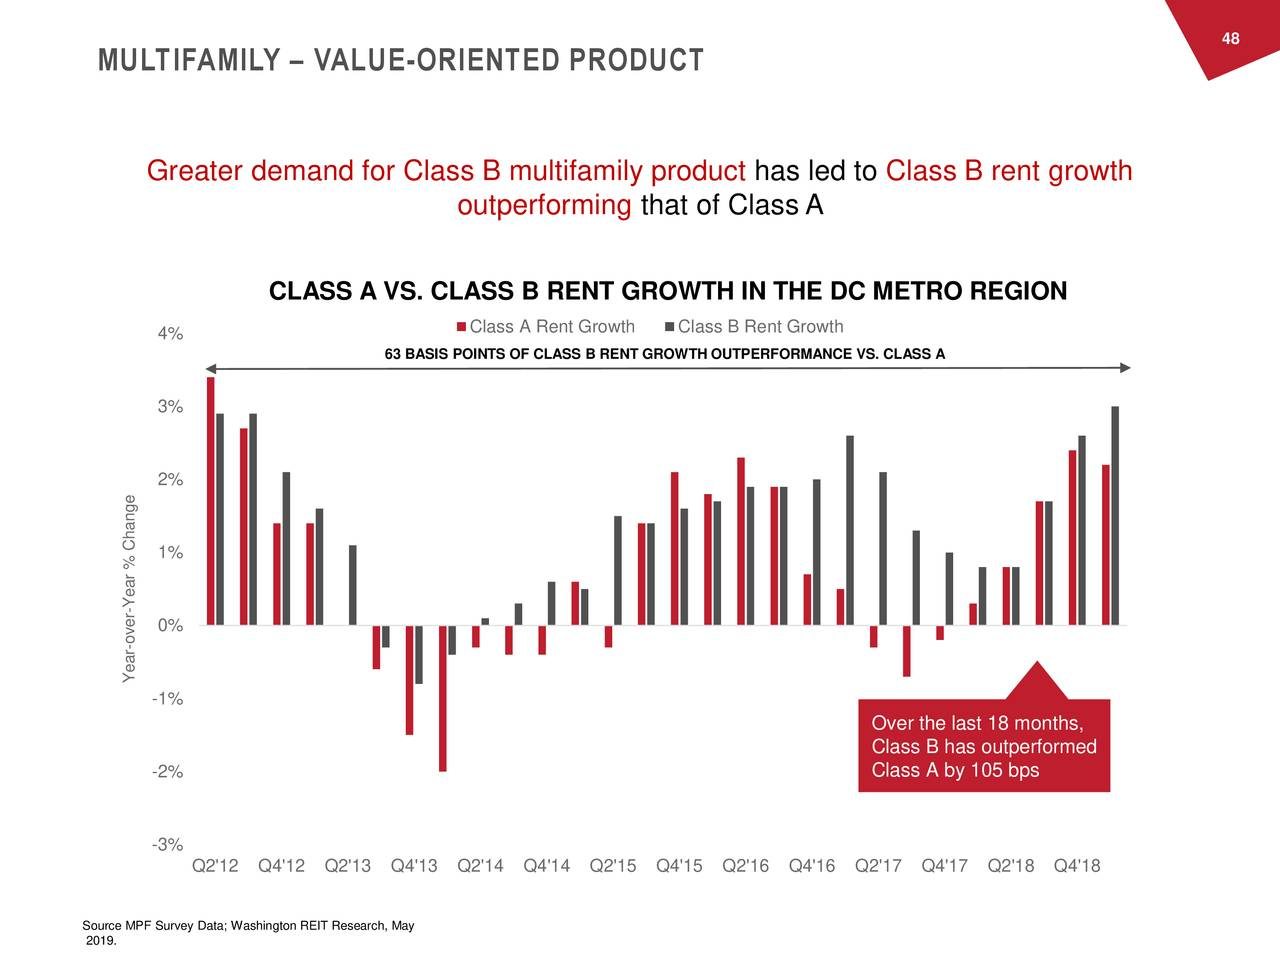 MULTIFAMILY – VALUE-ORIENTED PRODUCT Greater demand for Class B multifamily product has led to Class B rent growth outperforming that of Class A CLASS A VS. CLASS B RENT GROWTH IN THE DC METRO REGION Class A Rent Growth Class B Rent Growth 4% 63 BASIS POINTS OF CLASS B RENT GROWTH OUTPERFORMANCE VS. CLASS A 3% 2% 1% Year % Change - 0% -ver Year -1% Over the last 18 months, Class B has outperformed -2% Class A by 105 bps -3% Q2'12 Q4'12 Q2'13 Q4'13 Q2'14 Q4'14 Q2'15 Q4'15 Q2'16 Q4'16 Q2'17 Q4'17 Q2'18 Q4'18 Source MPF Survey Data; Washington REIT Research, May 2019.